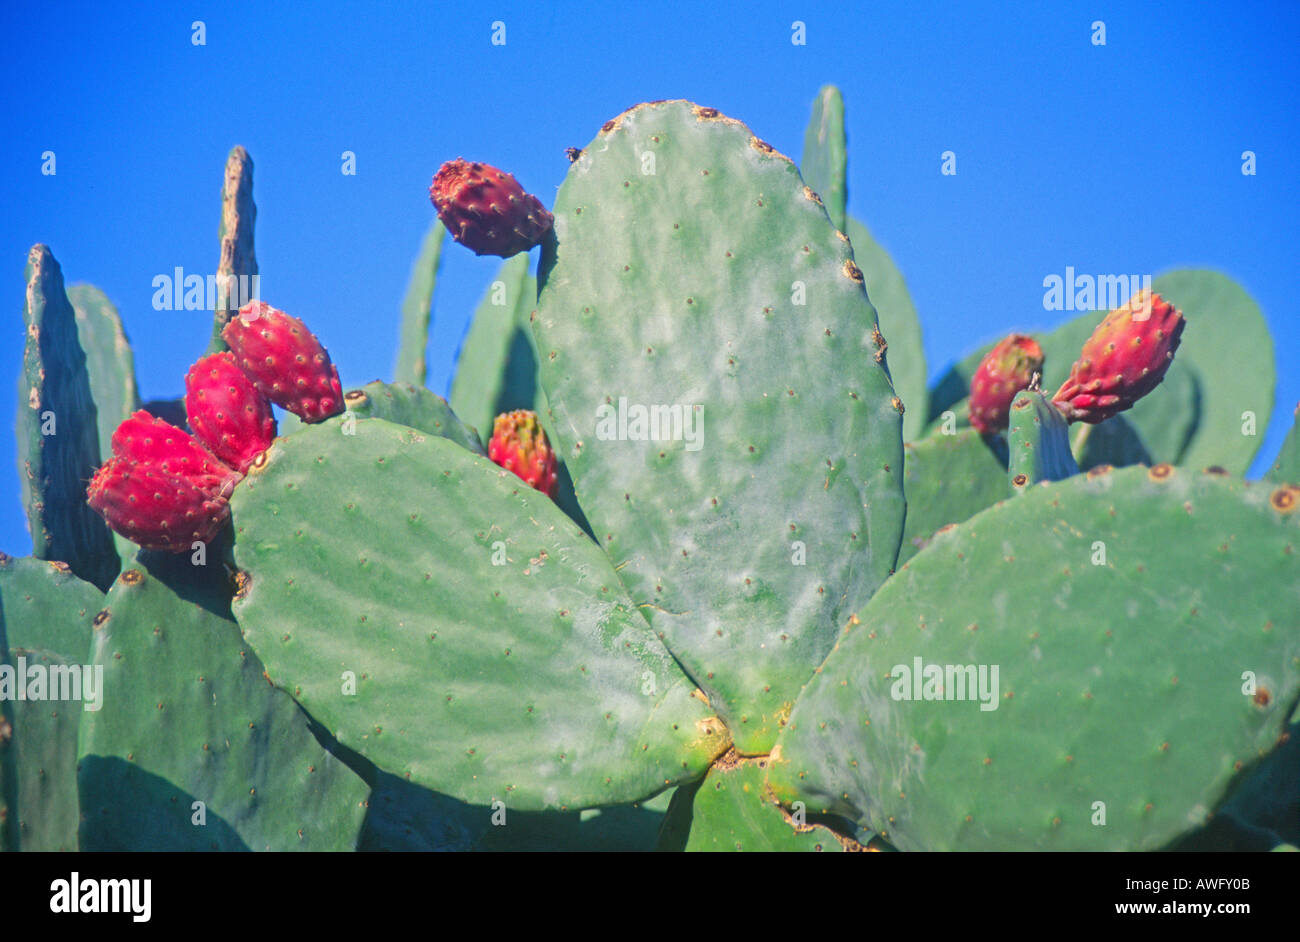 Prickly pear cactus fruit growing on plant Sicily Italy - Stock Image